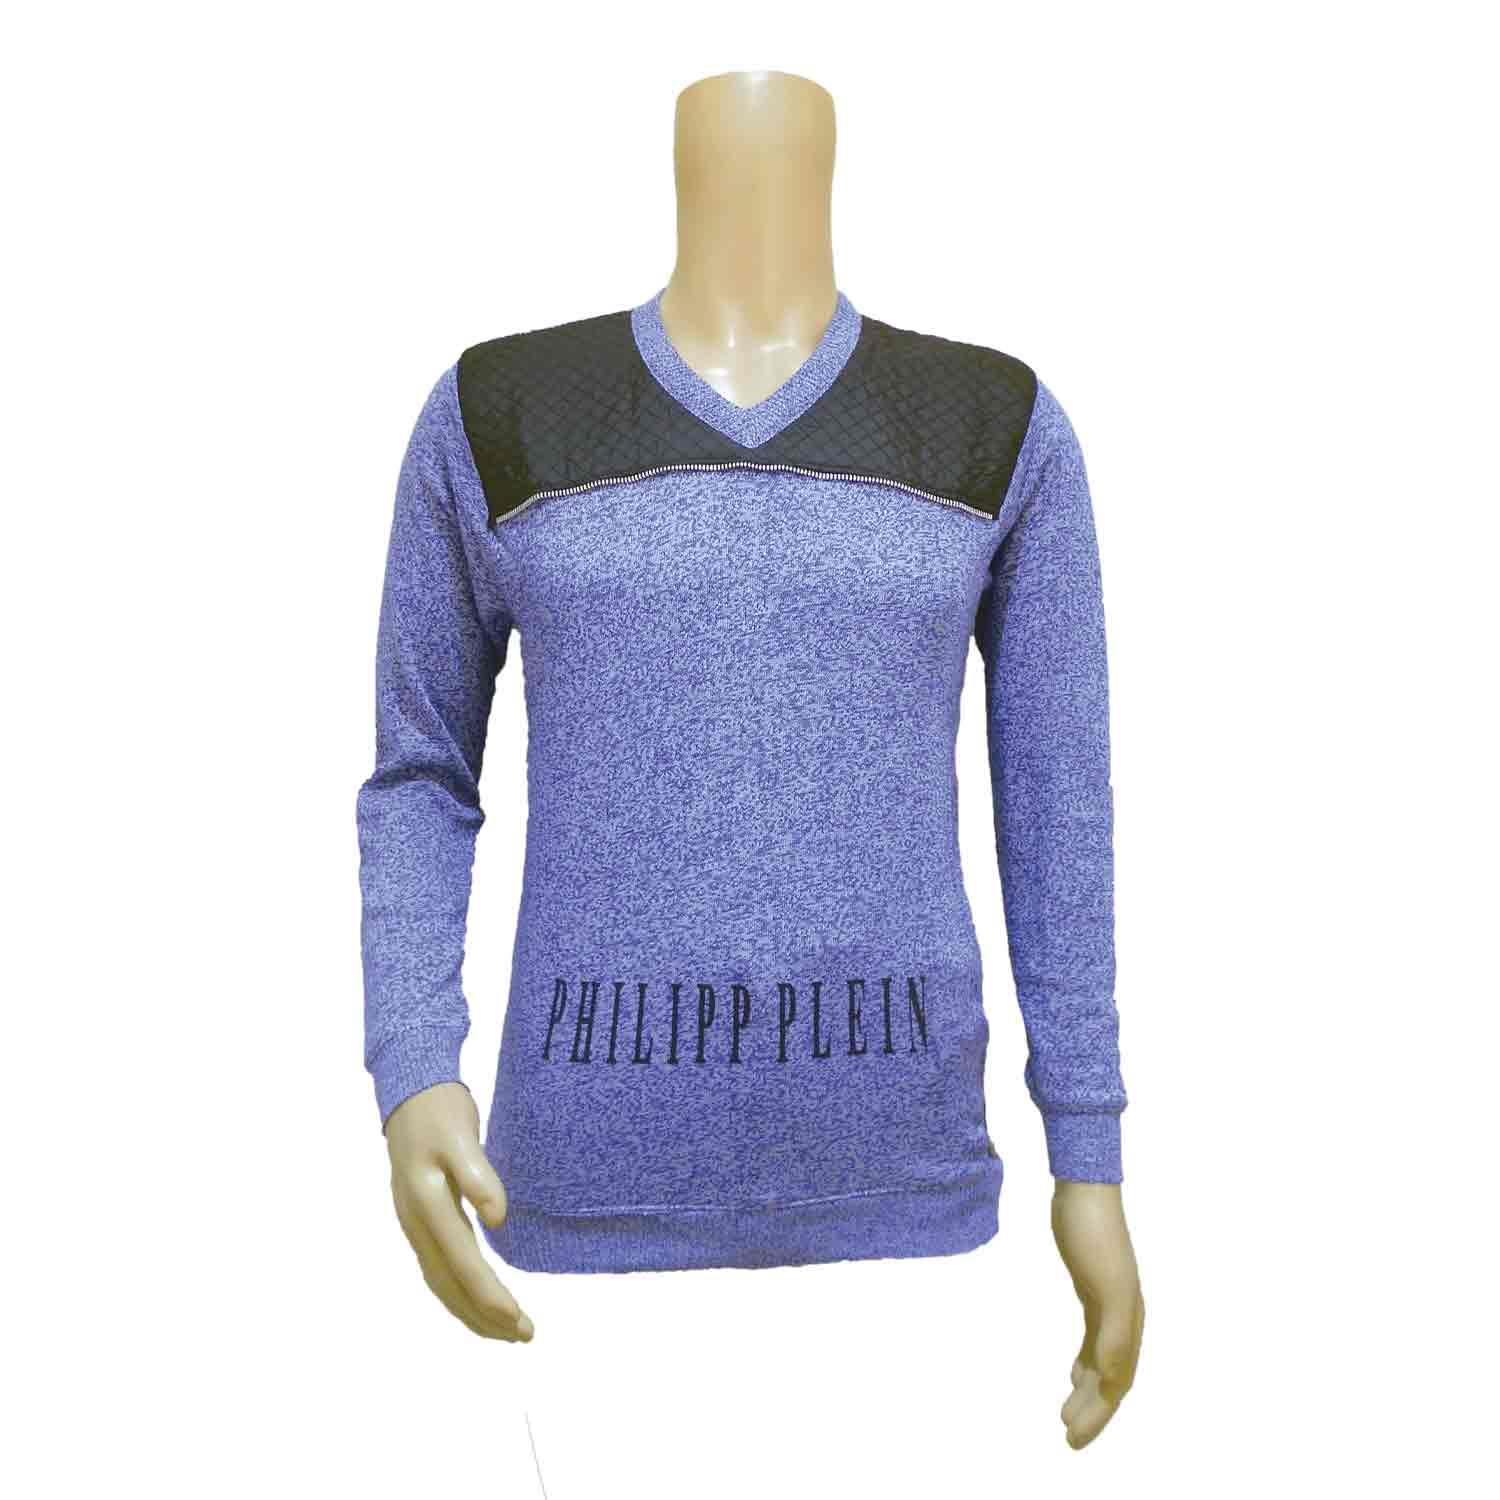 MEN'S SWEATER PHP P BLUE-WHITE